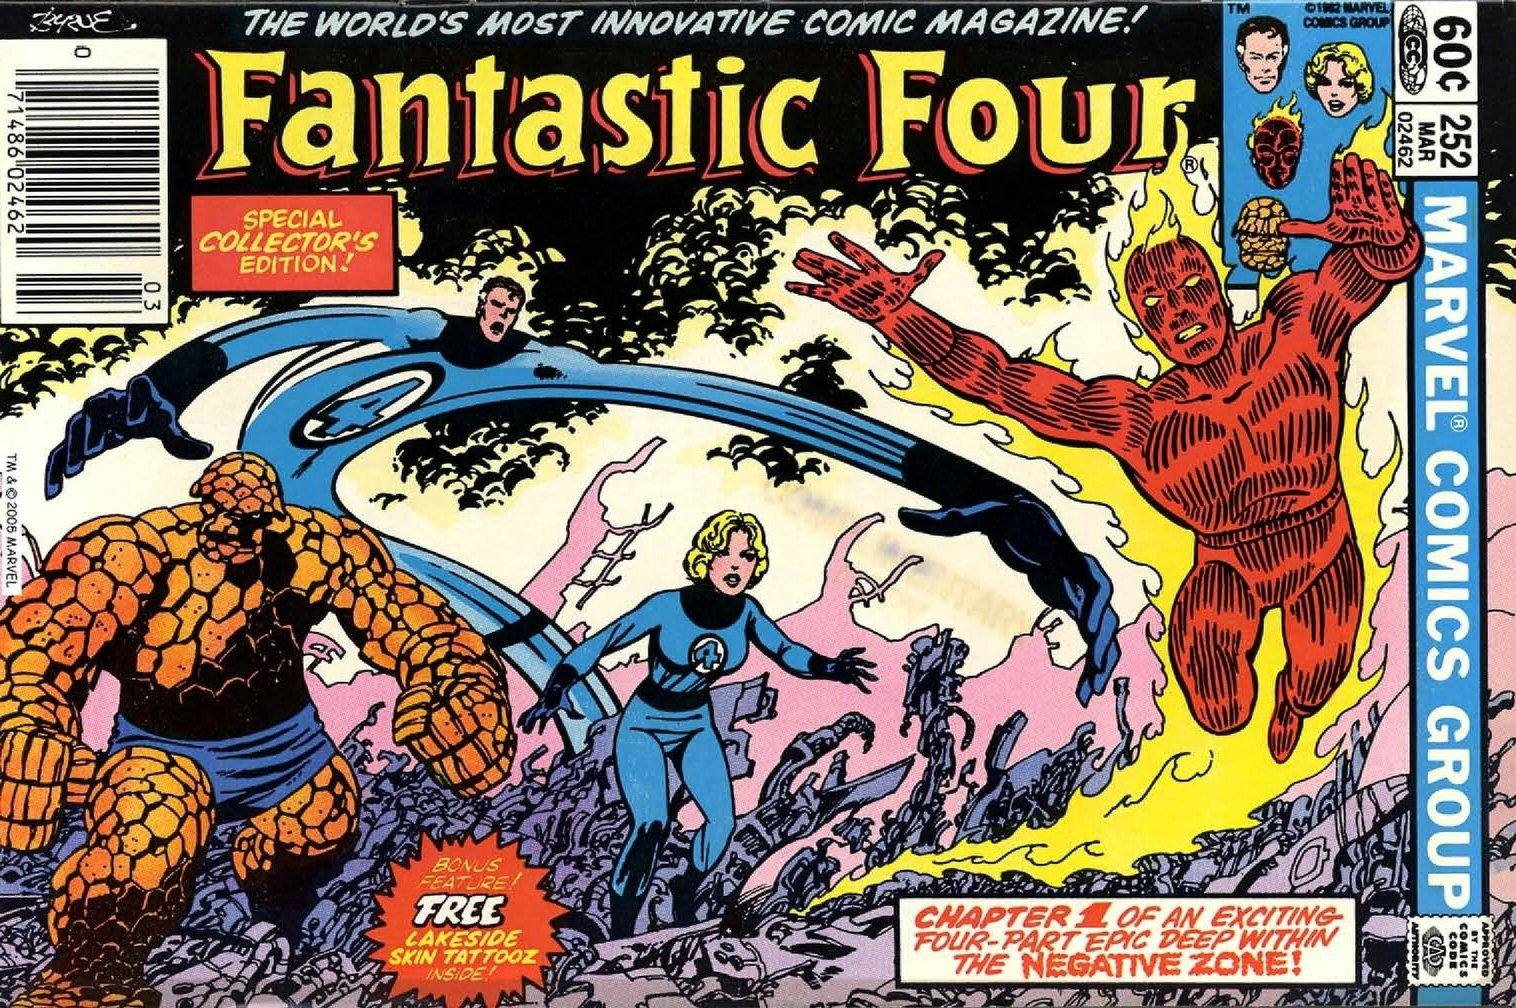 Fantastic Four 252 sideways issue